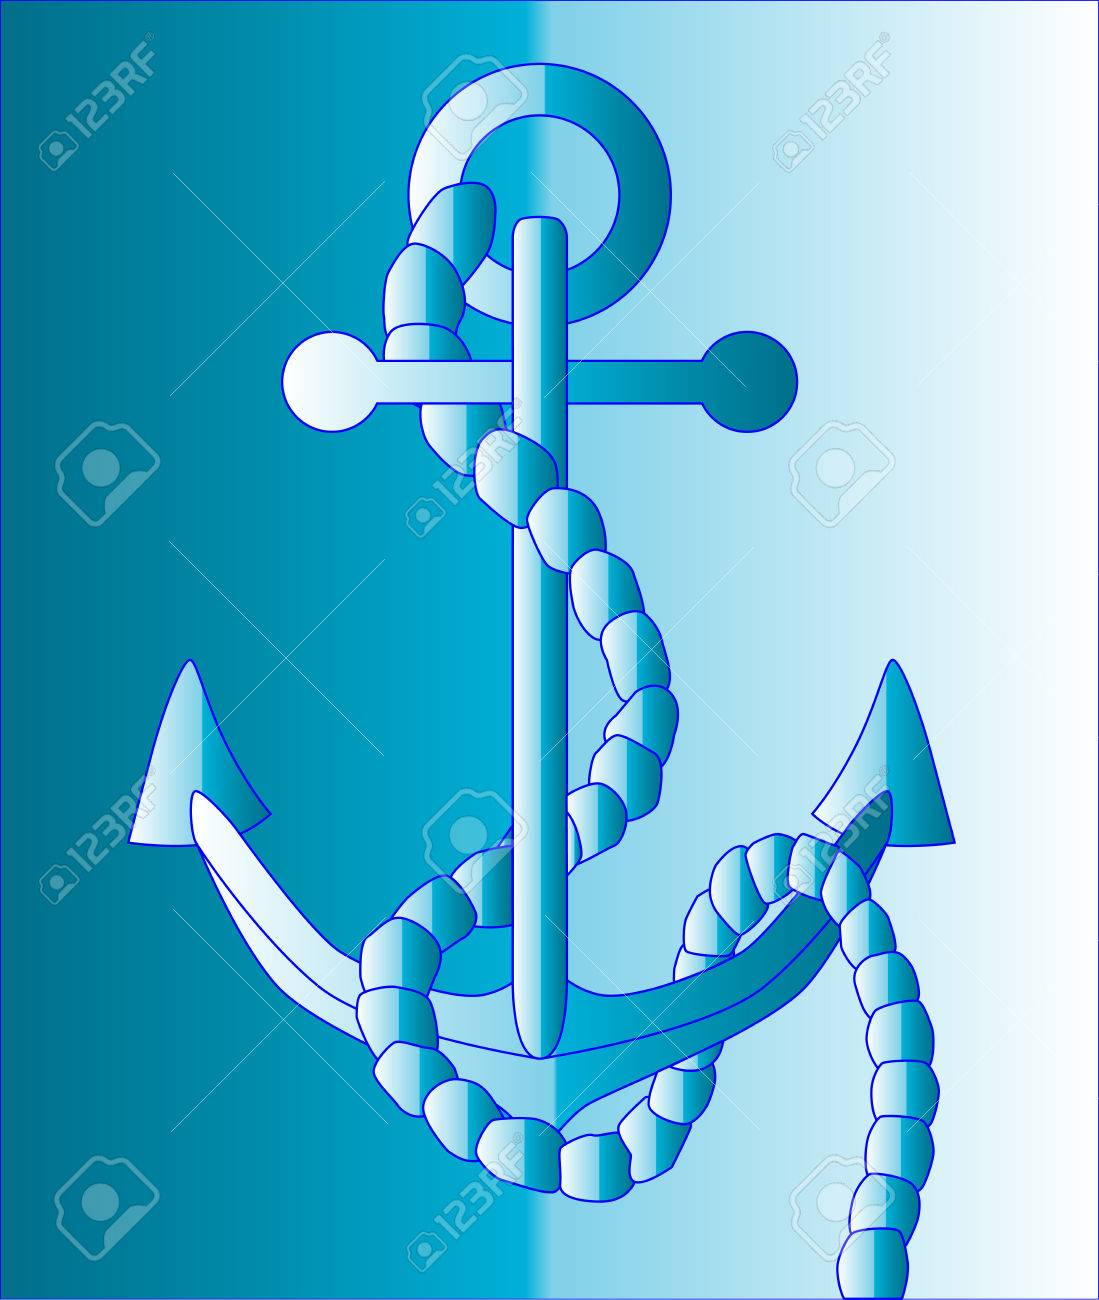 1099x1300 A Blue Anchor Drawing Against A Blue Royalty Free Cliparts